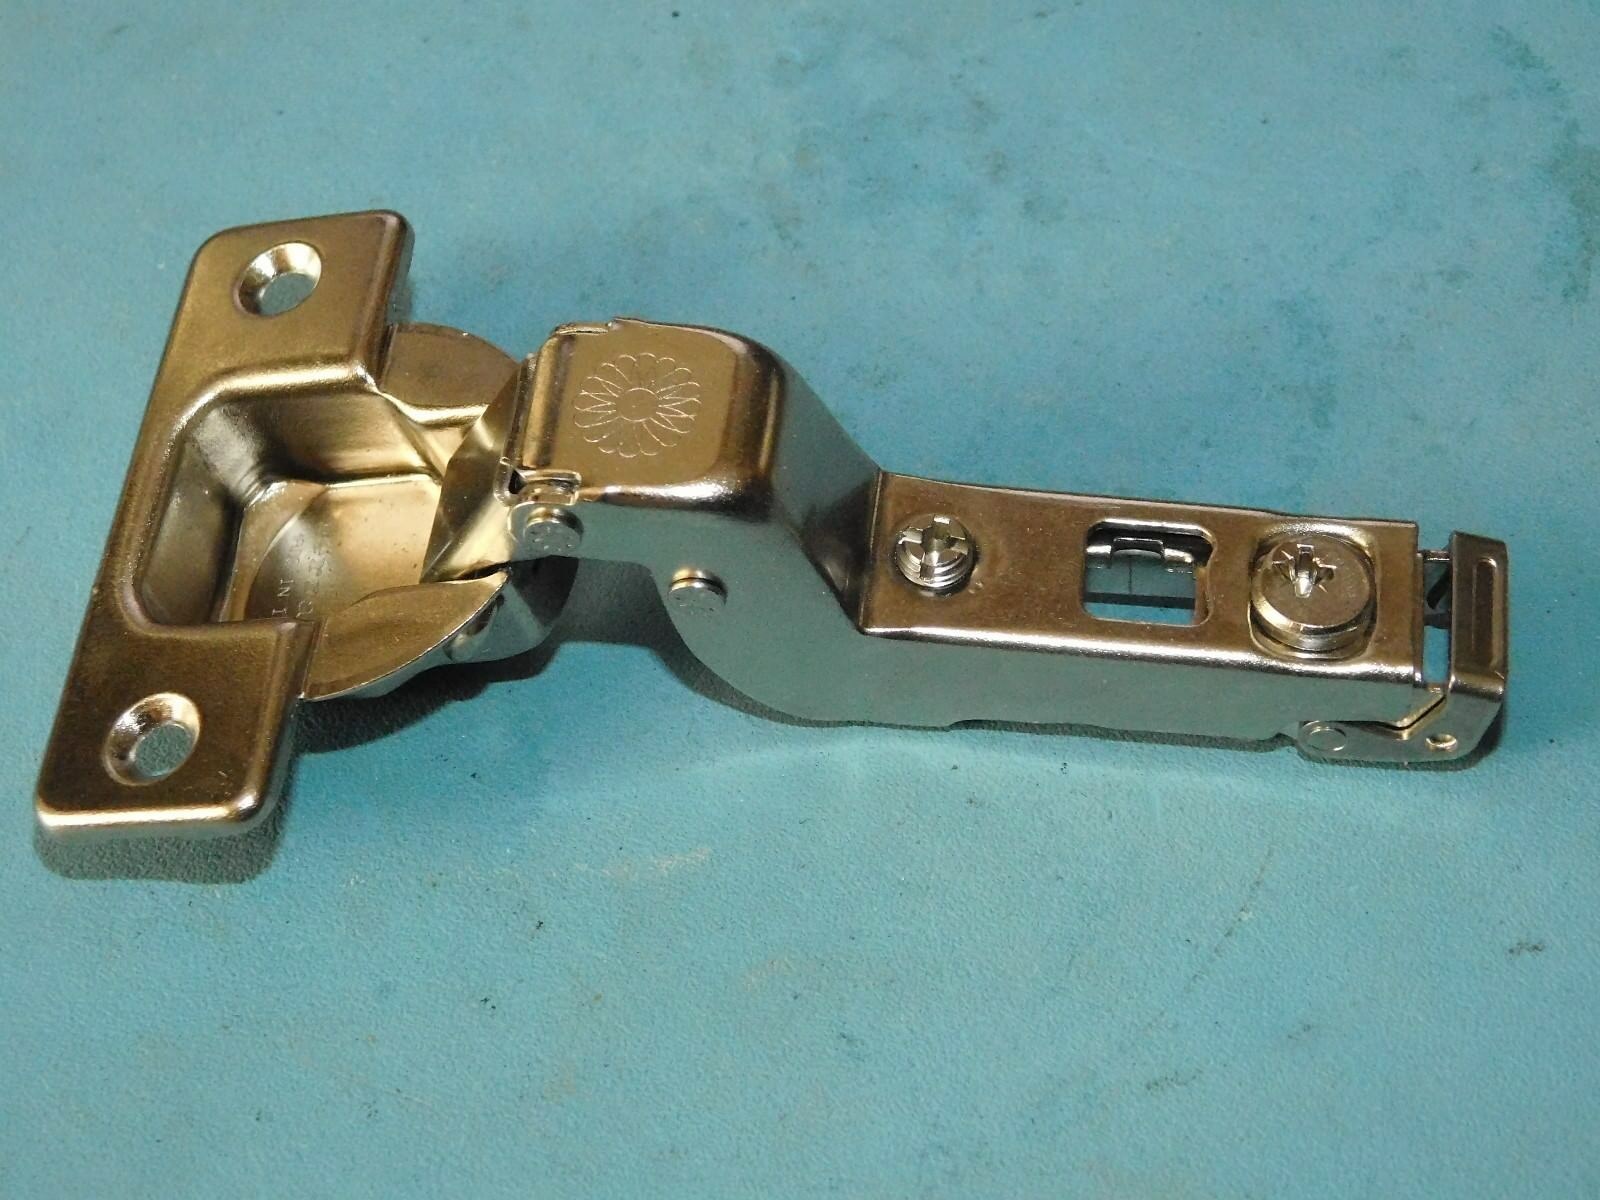 LOT OF 40 Ferrari Hinge 1566 BR979-110 TH-3 #19 - $60.00 | PicClick